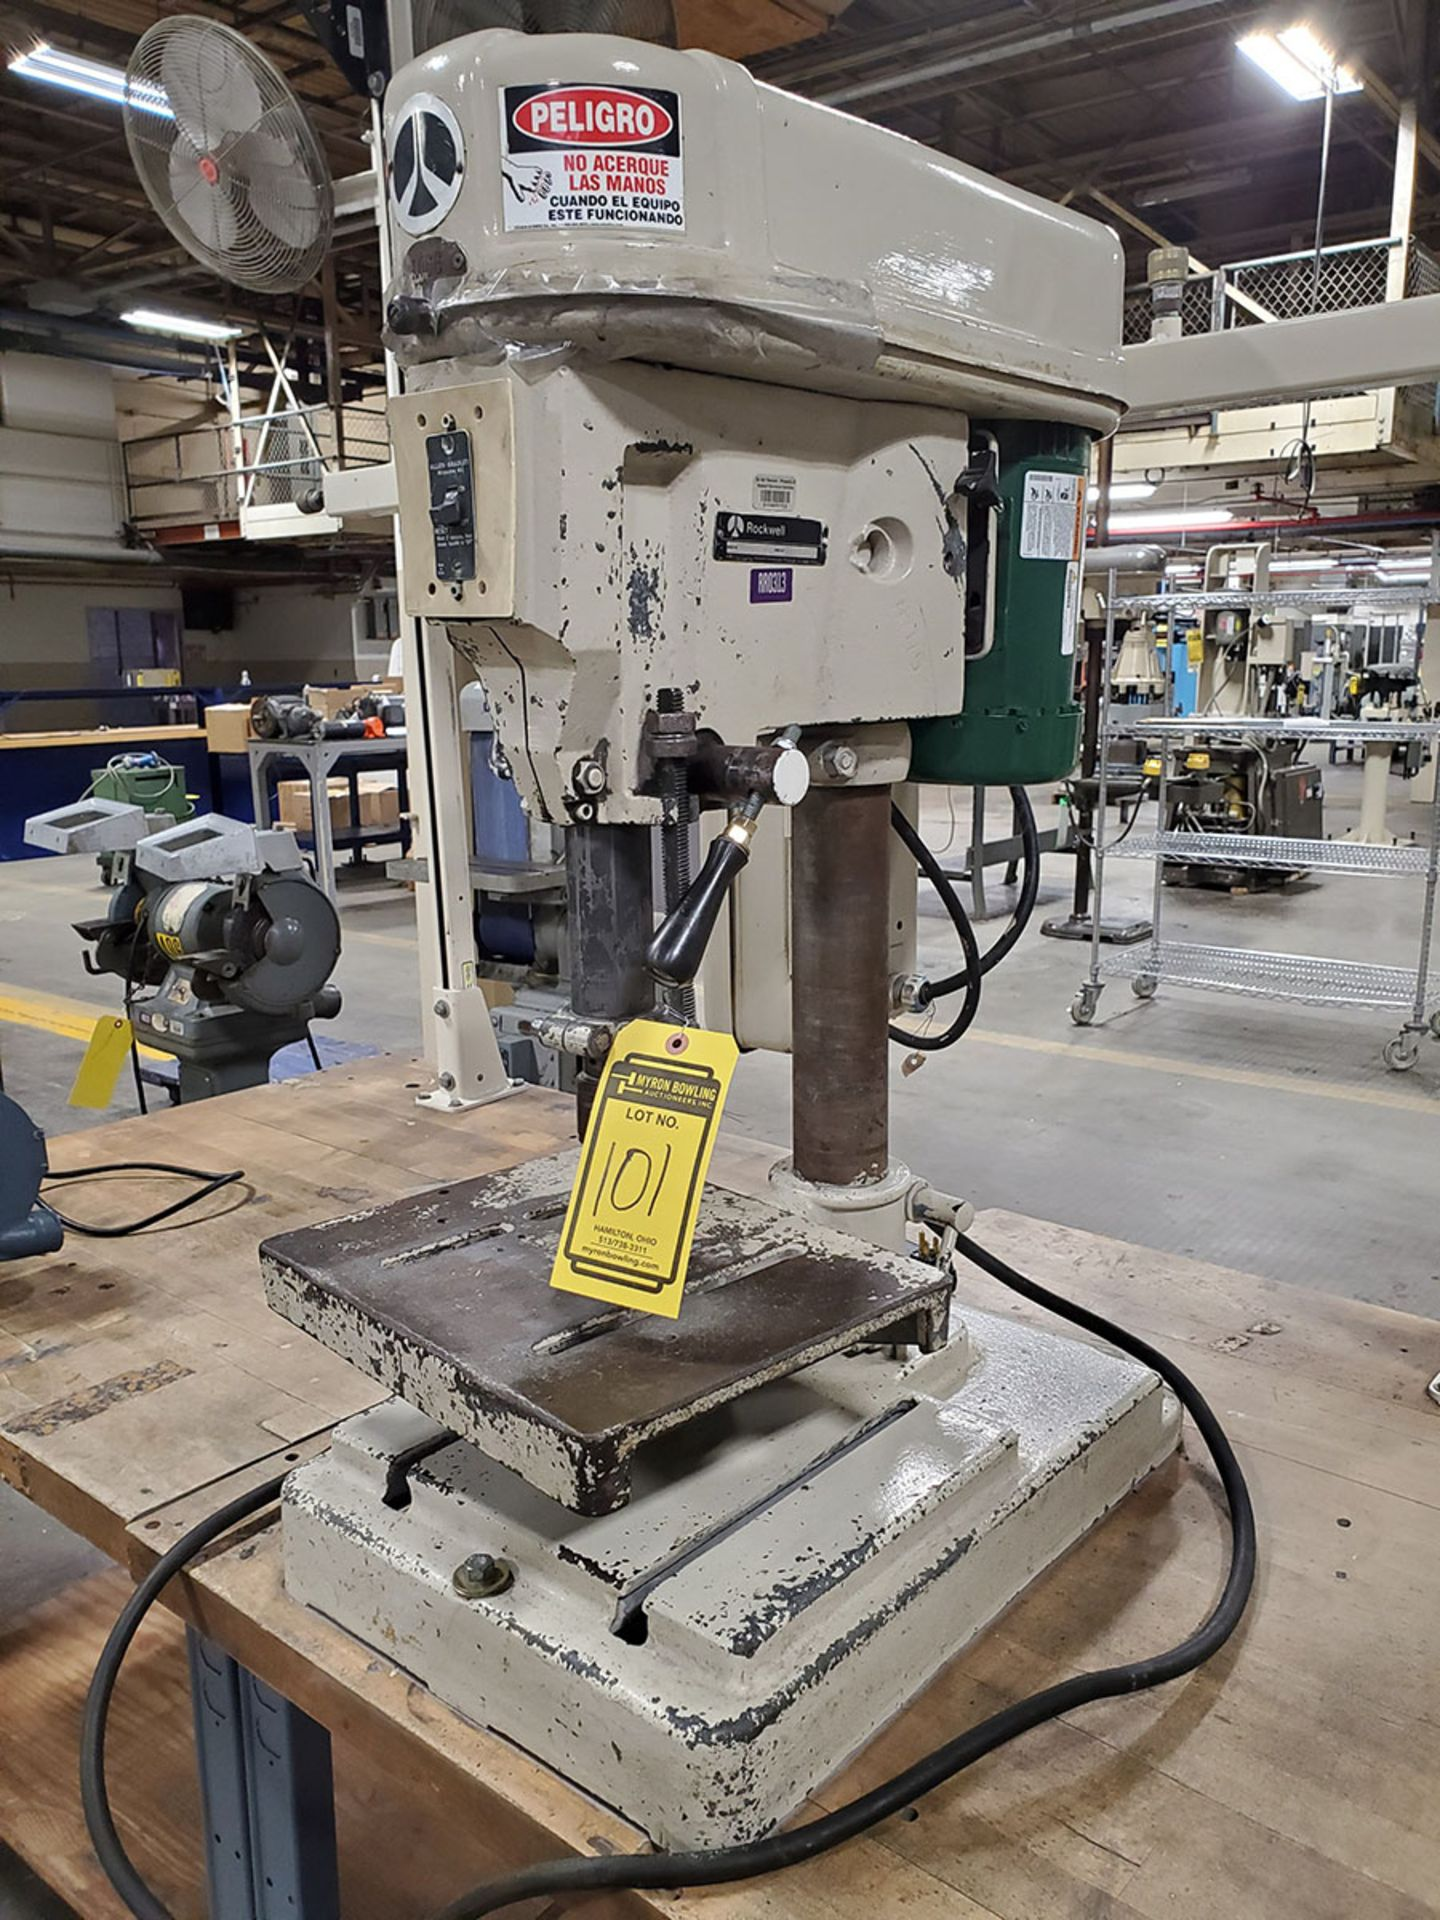 Lot 101 - ROCKWELL VERTICAL DRILL PRESS; S/N 1818982 & BALDOR GRINDER/BUFFER; CAT 623E, BOTH MOUNTED ON